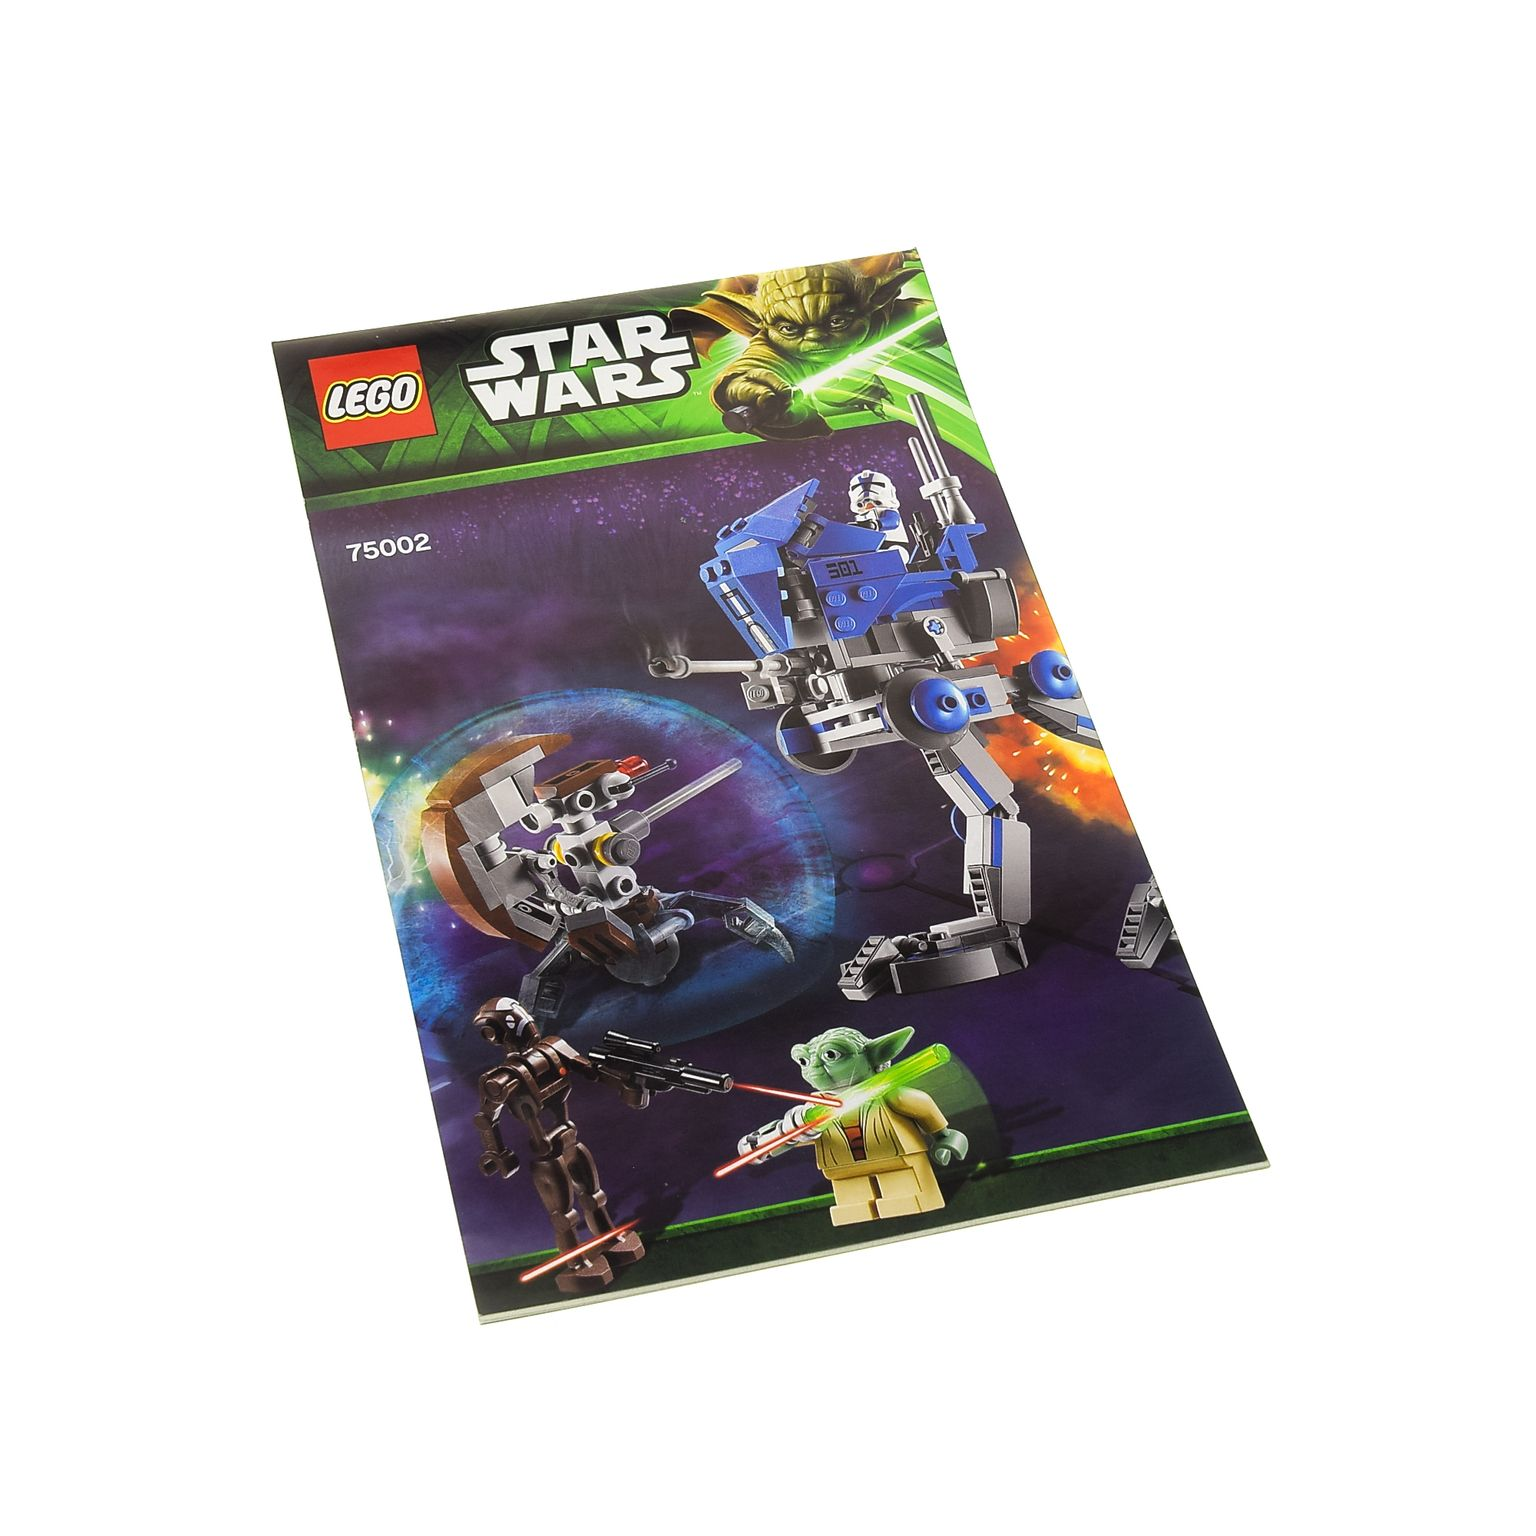 1 X Lego Brick Instructions For Set Star Wars Clone Wars At Rt 75002